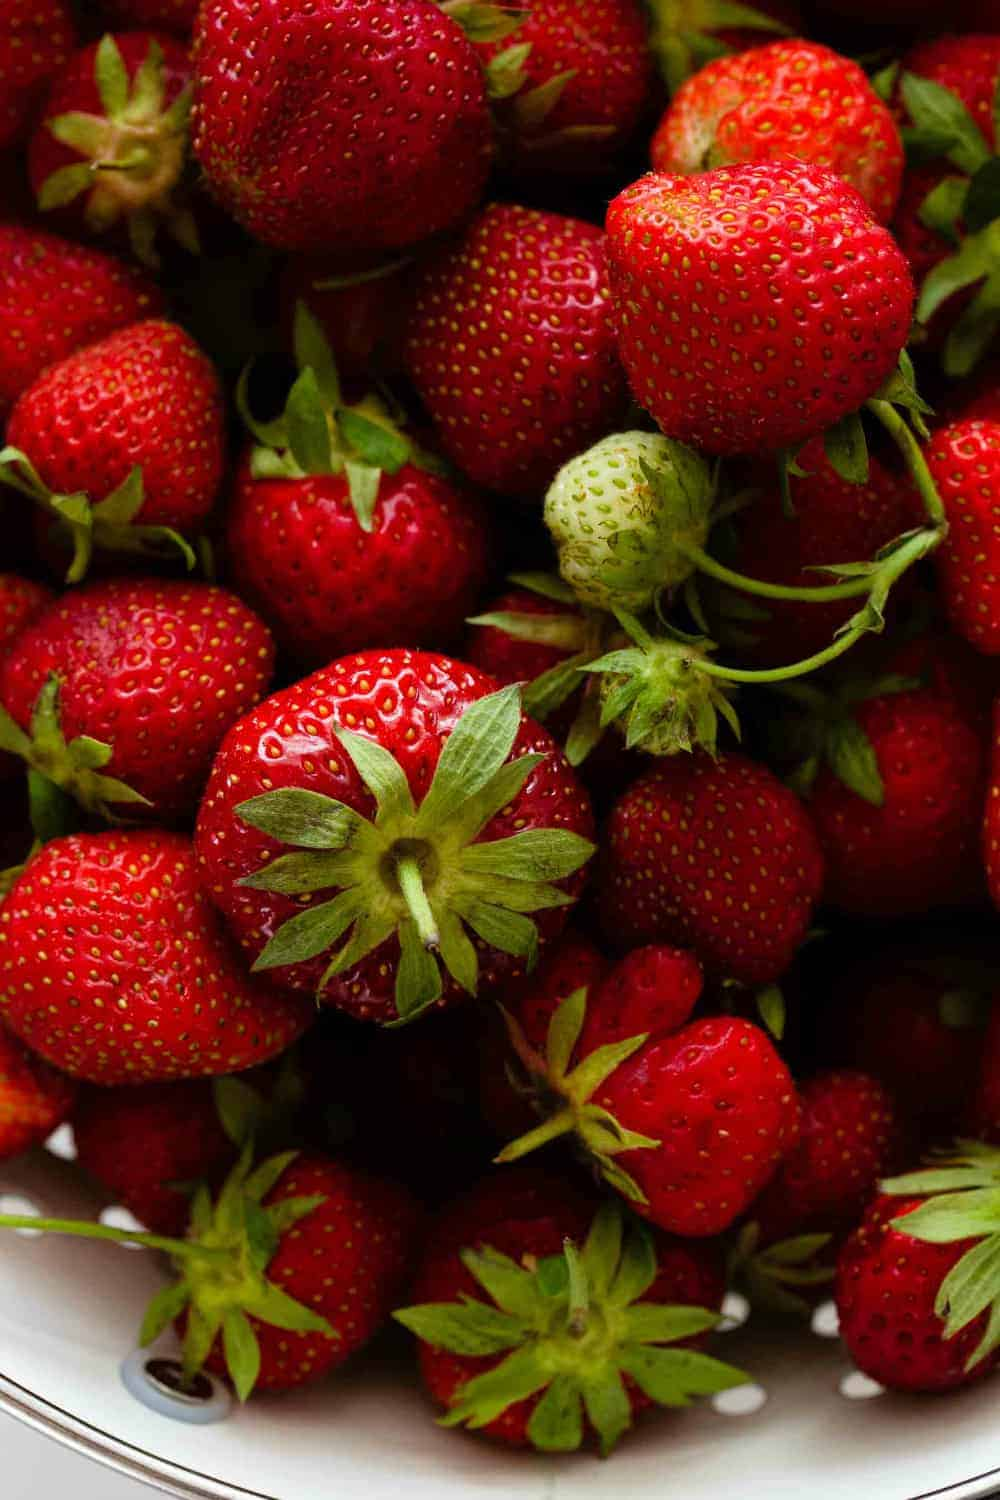 Fresh, whole strawberries